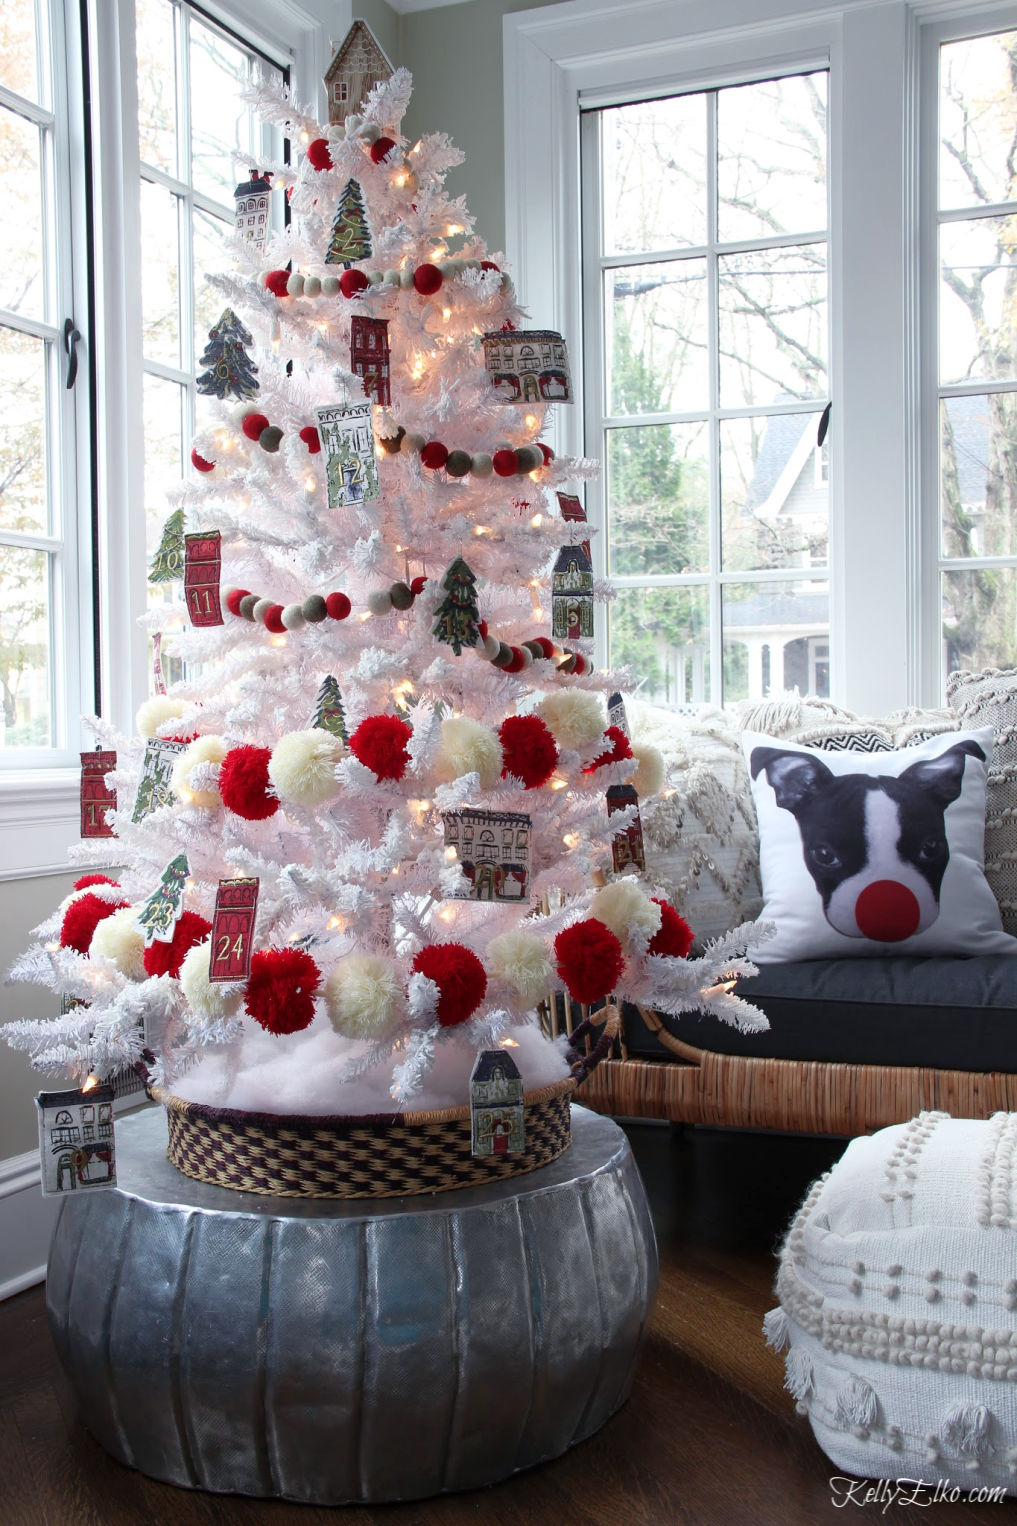 How cute is this Advent calendar Christmas tree to countdown to Christmas kellyelko.com #christmas #christmasdecor #christmastree #diychristmasdecor #adventcalendar #whitechristmastree #flockedchristmastree #redchristmas #pompoms #christmasgarland